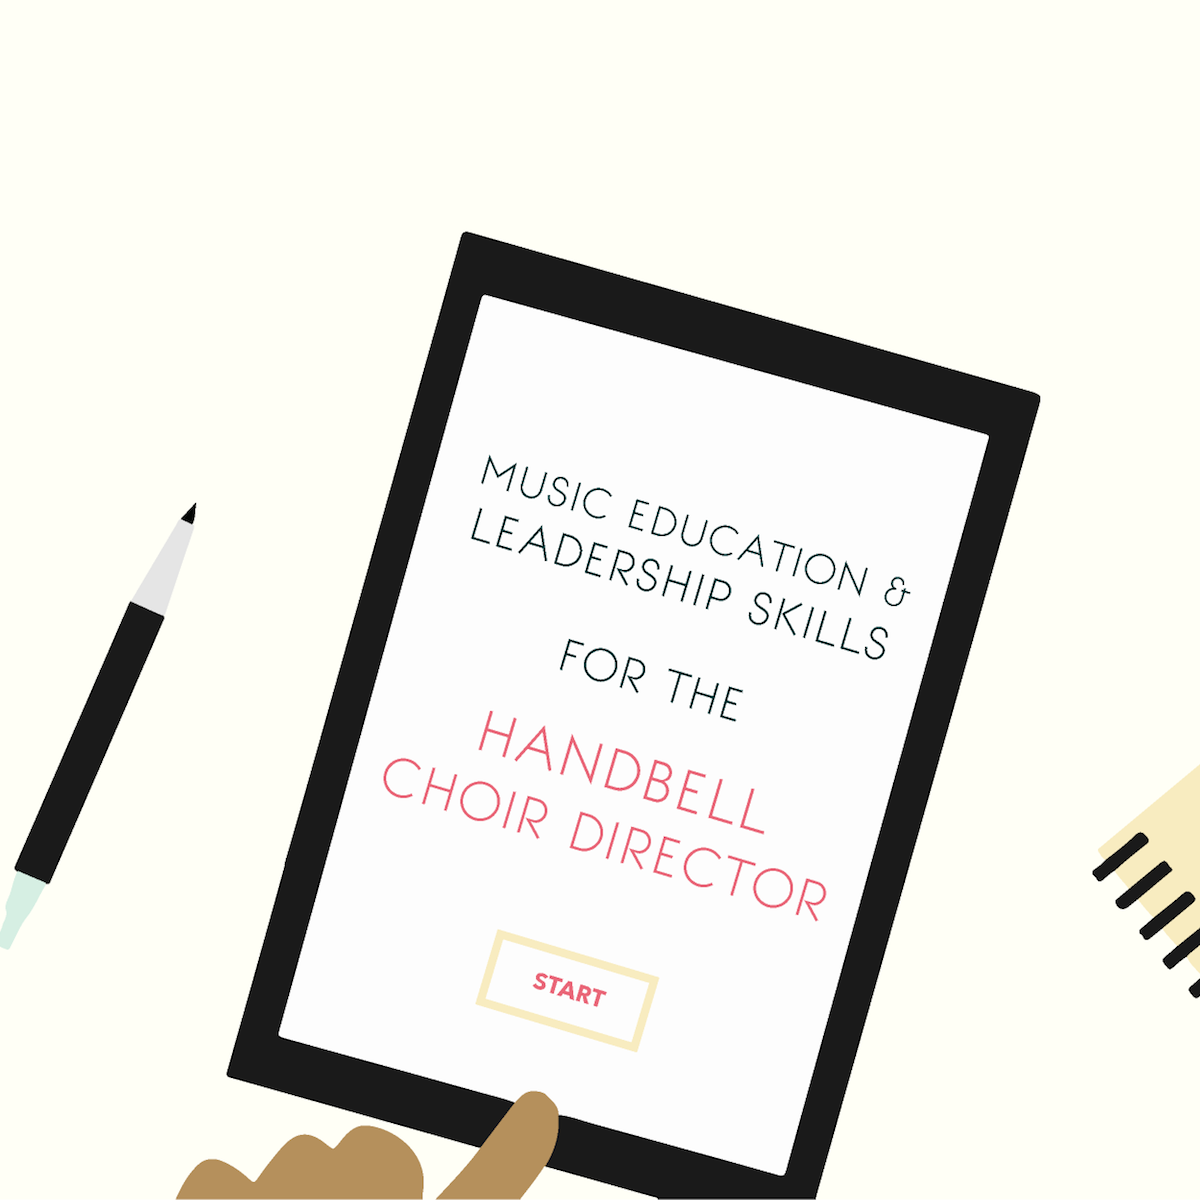 Music Education & Leadership Skills for the Handbell Choir Director - Online Course.png